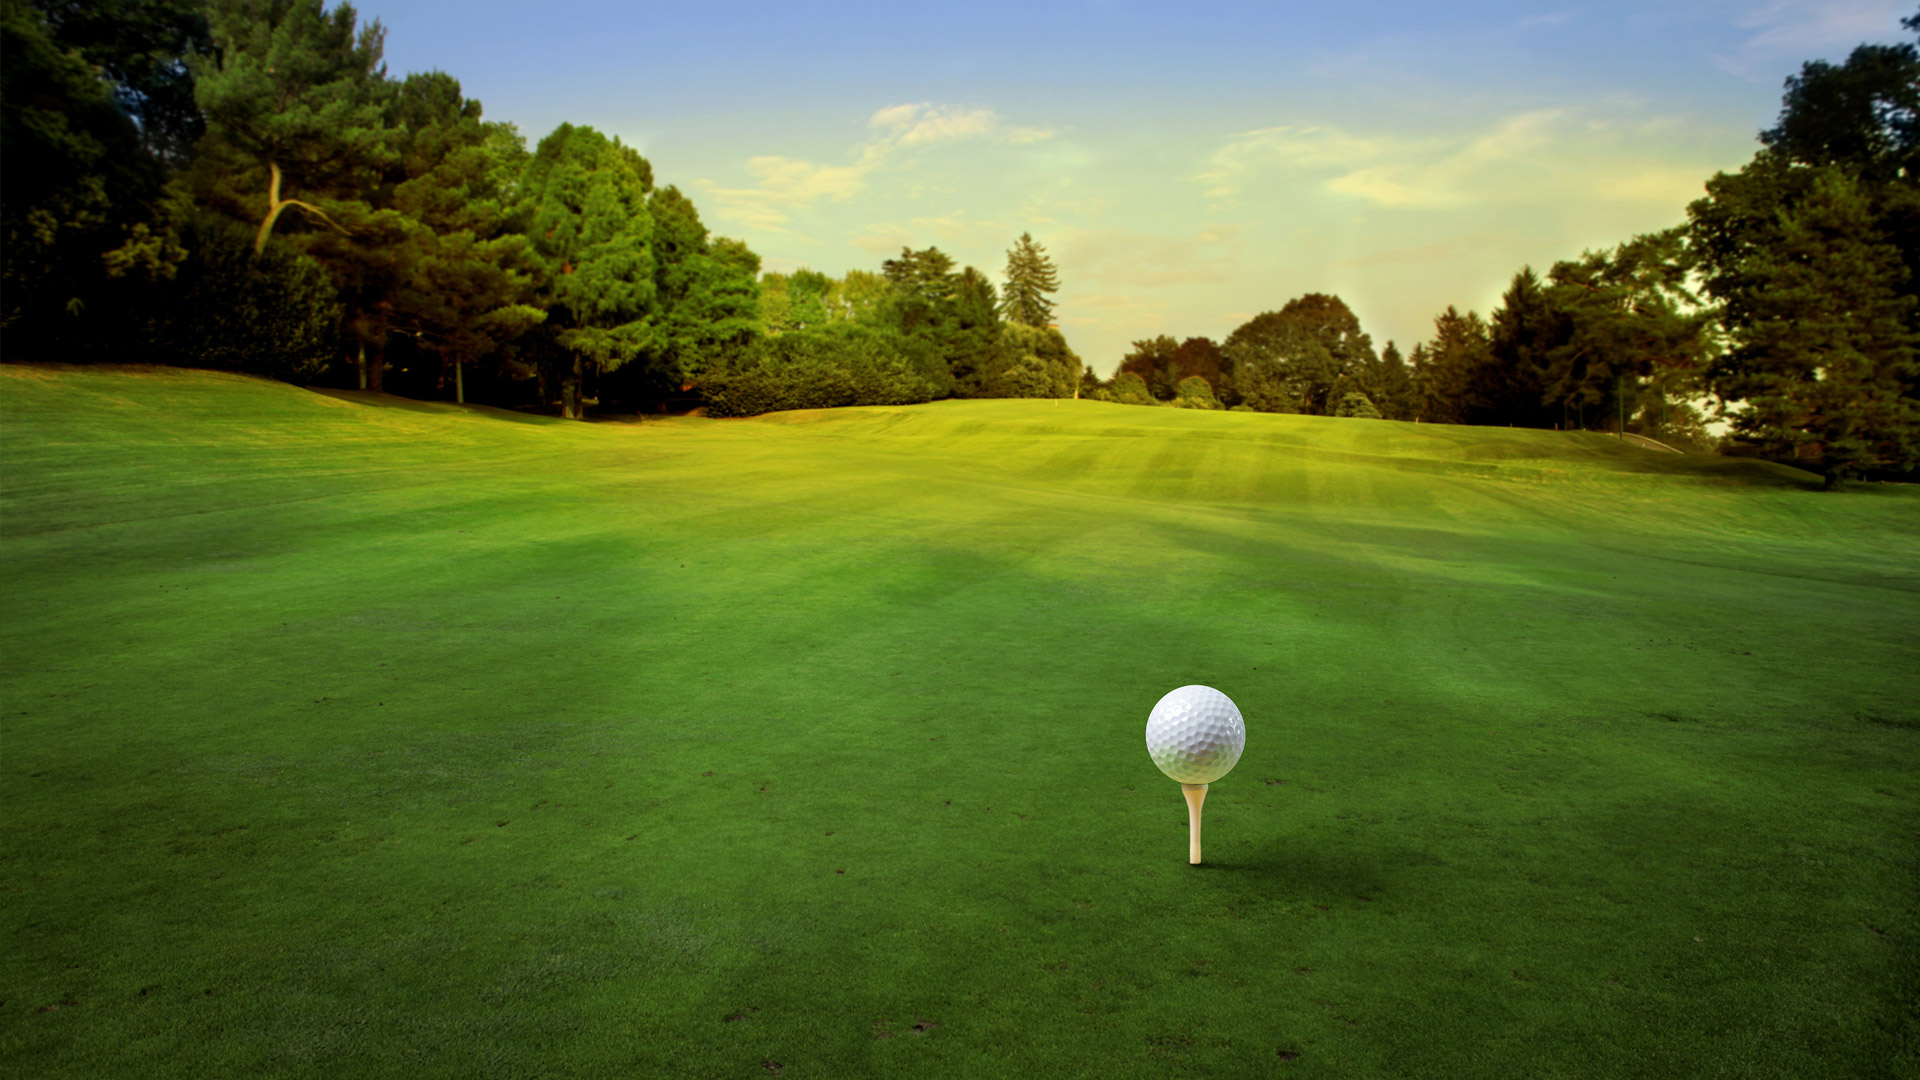 1920 X 1080 Hd Wallpaper Golf